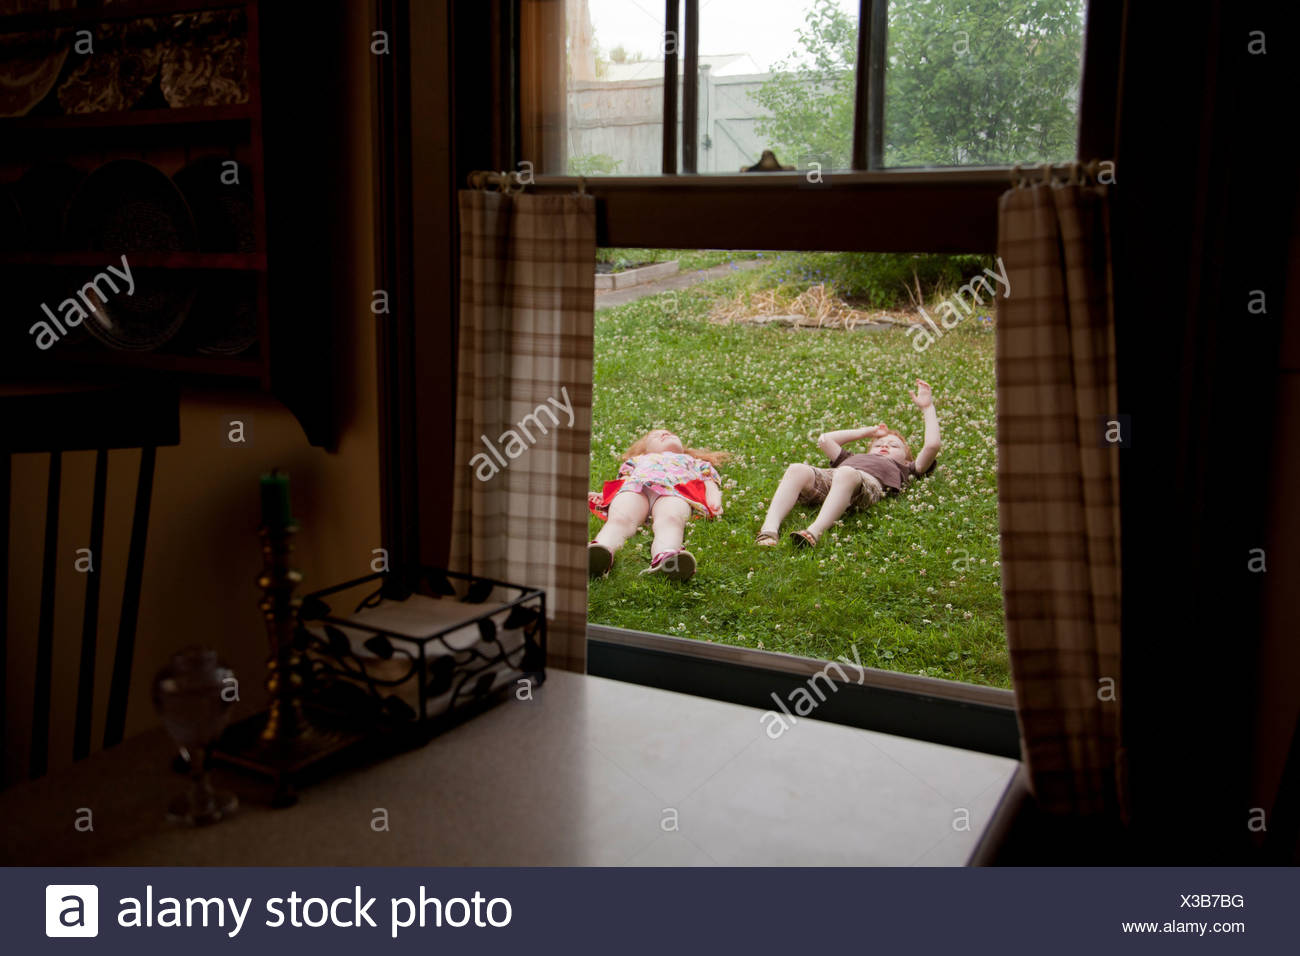 View through window of boy and and girl lying in garden - Stock Image